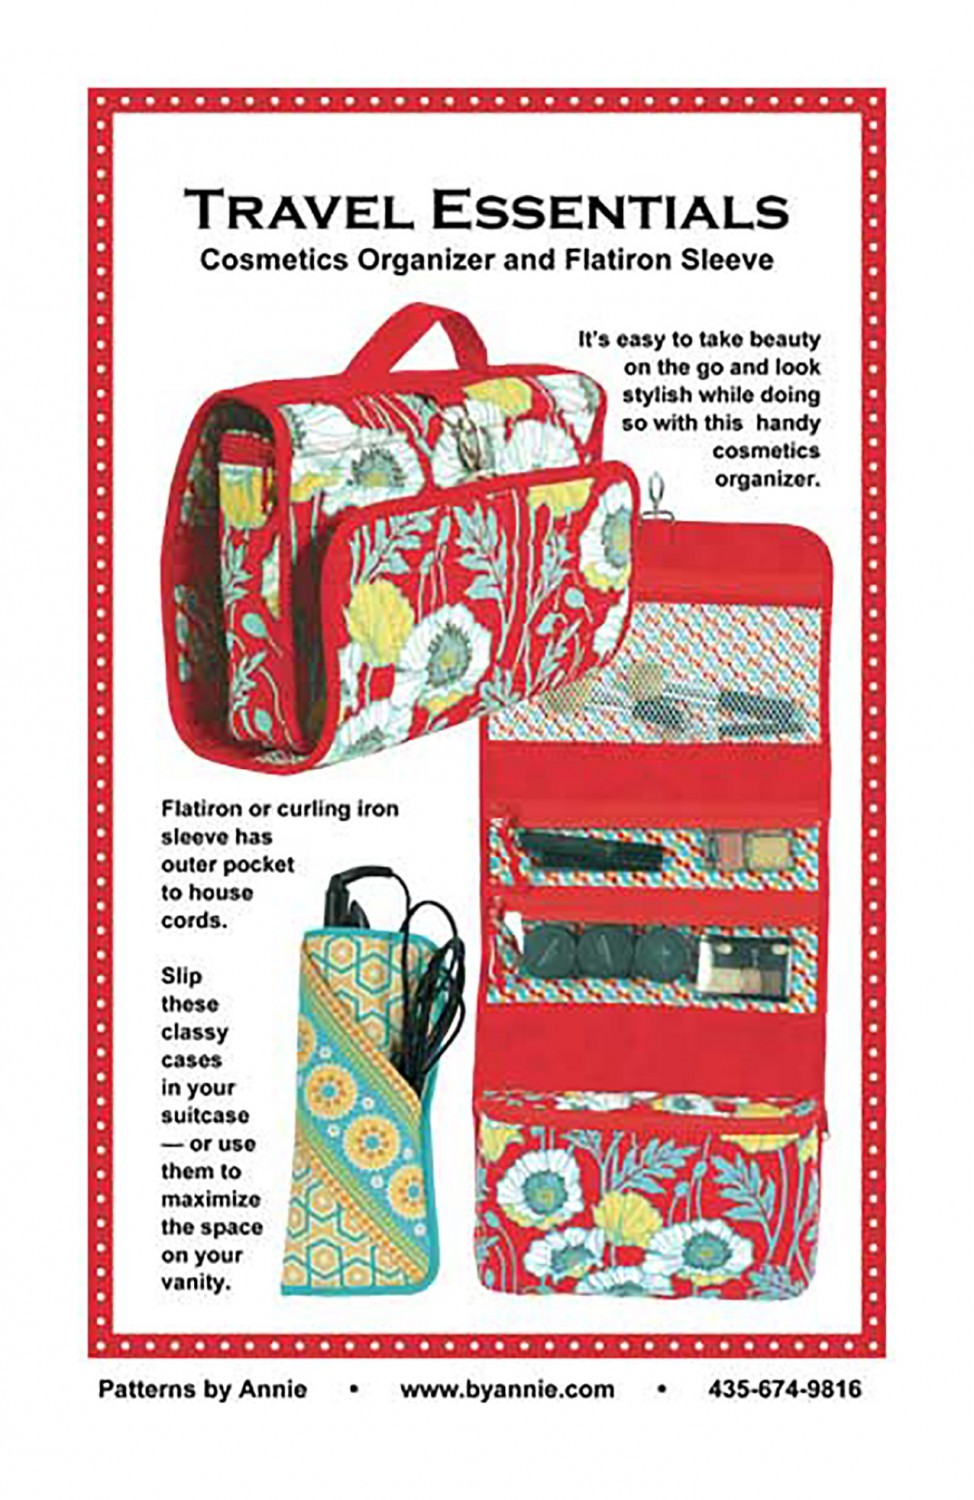 Travel Essentials Pattern